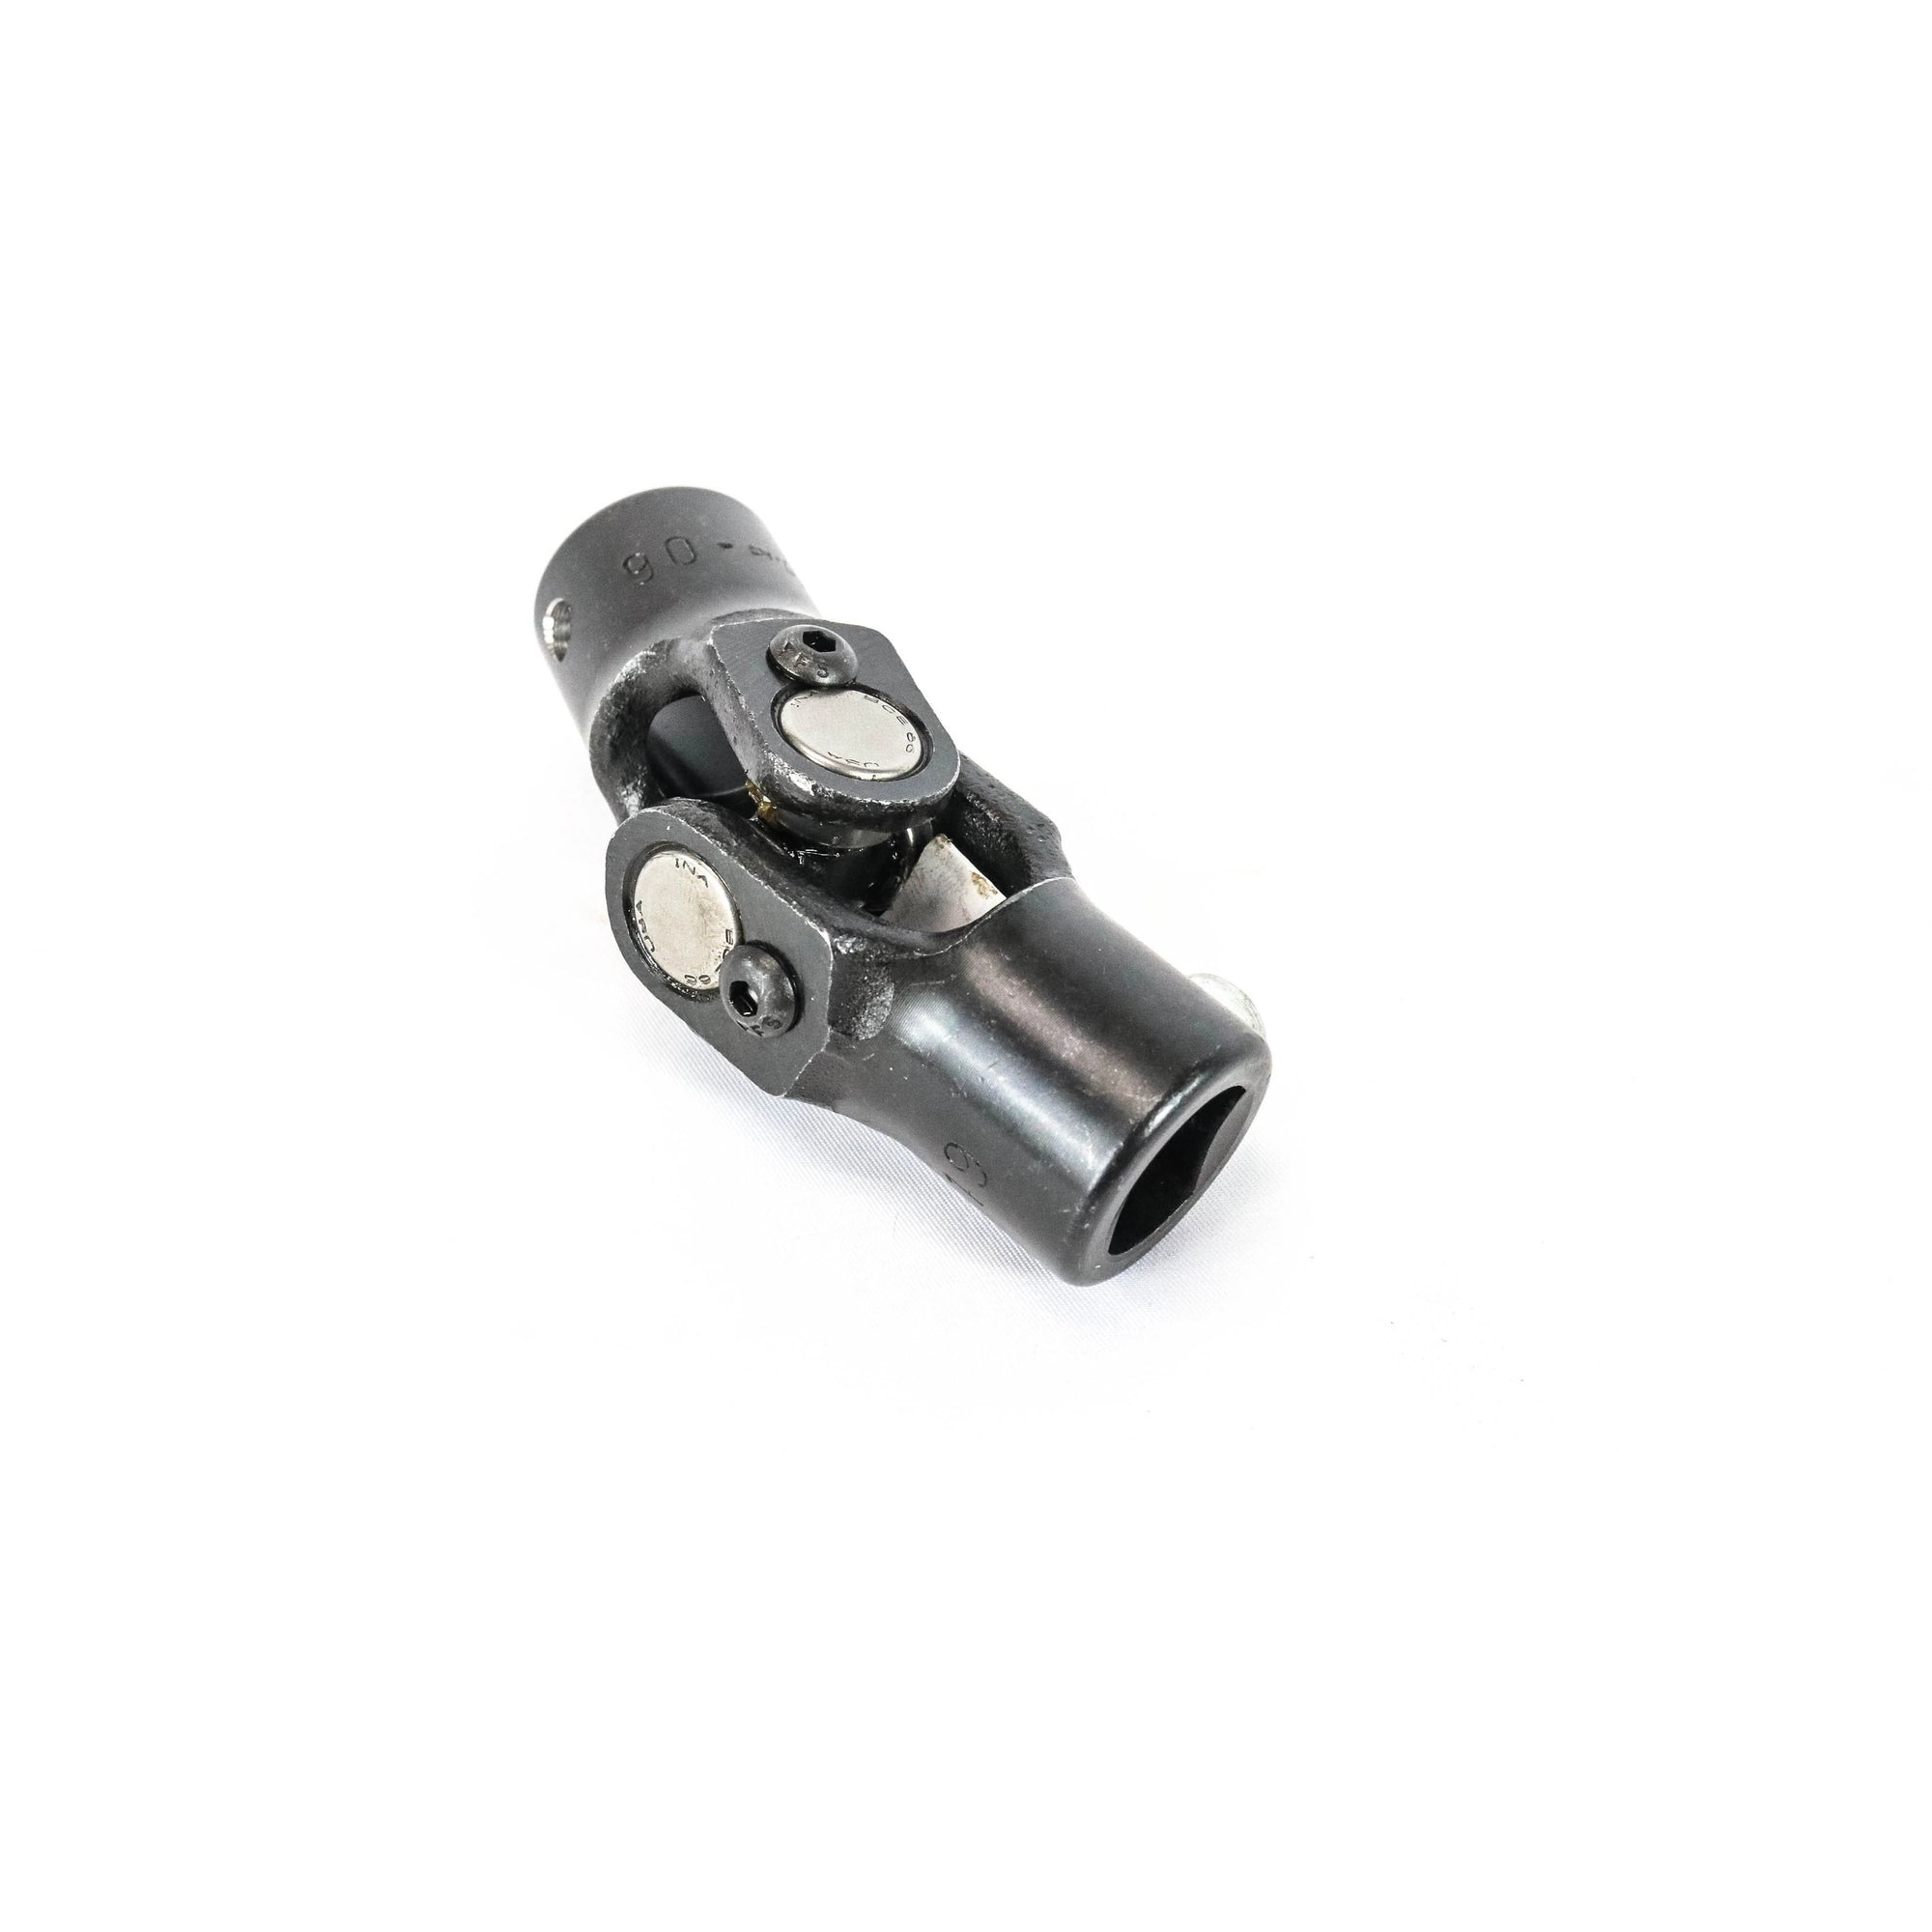 HIGH STRENGTH BLACK OXIDE UNIVERSAL JOINT WITH NEEDLE BEARINGS 9//16-26 SPLINE TO 1 DOUBLE D NEW SOUTHWEST SPEED STEERING U-JOINT 30 DEGREES OF USE ON STEERING SHAFT COLUMN BOX RACK